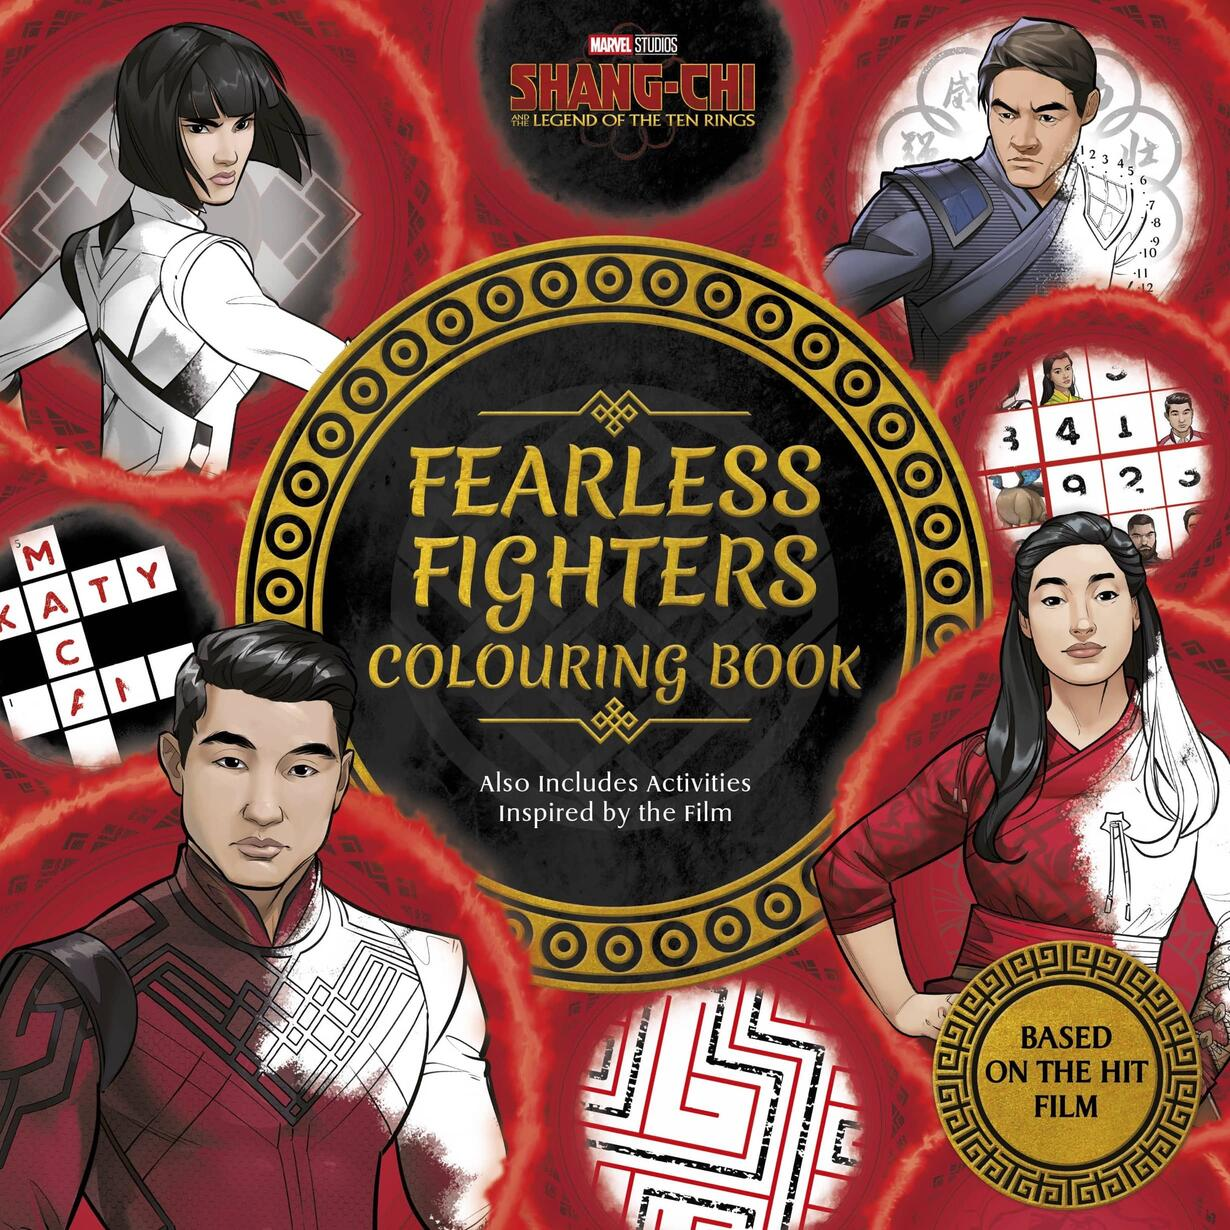 SHANG-CHI AND THE LEGEND OF THE TEN RINGS: FEARLESS FIGHTERS COLOURING BOOK